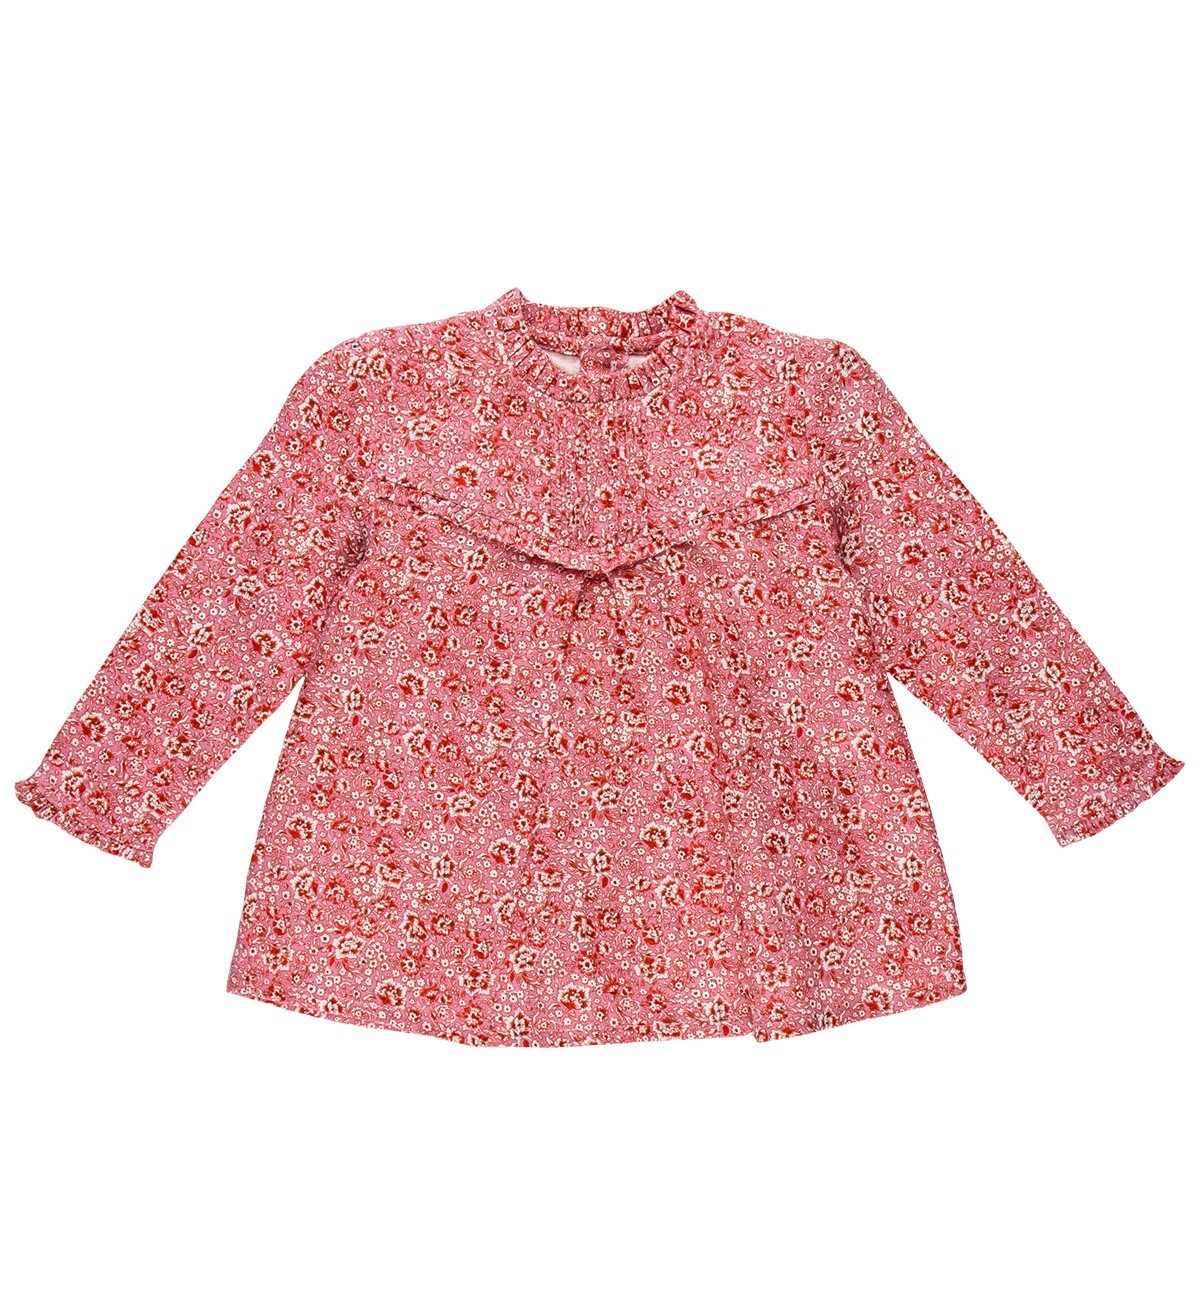 Spanish baby clothes | baby Blouse | Floral print blouse |babymaC  - 1